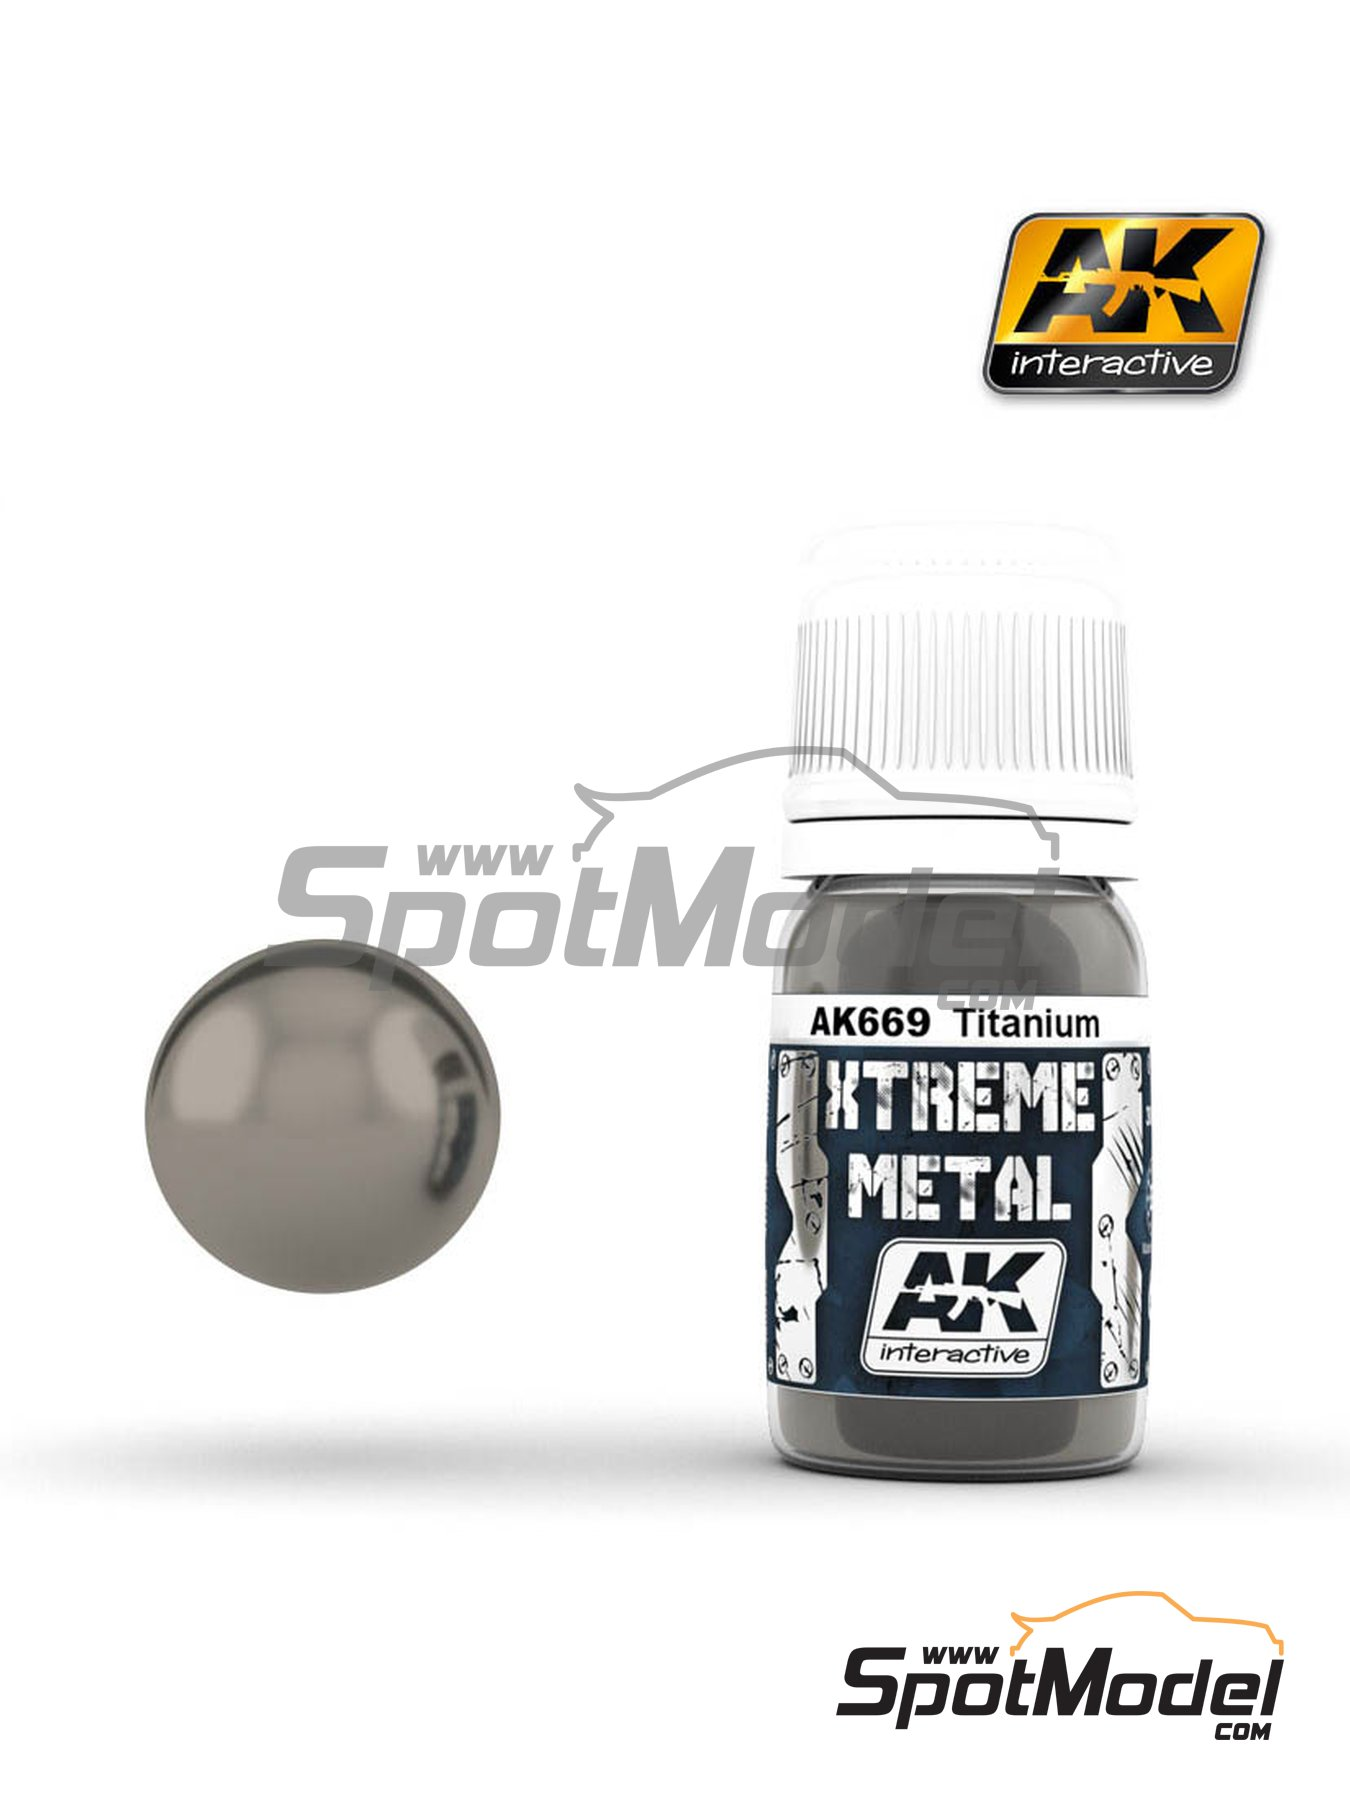 Titanium | Xtreme metal paint manufactured by AK Interactive (ref. AK-669) image